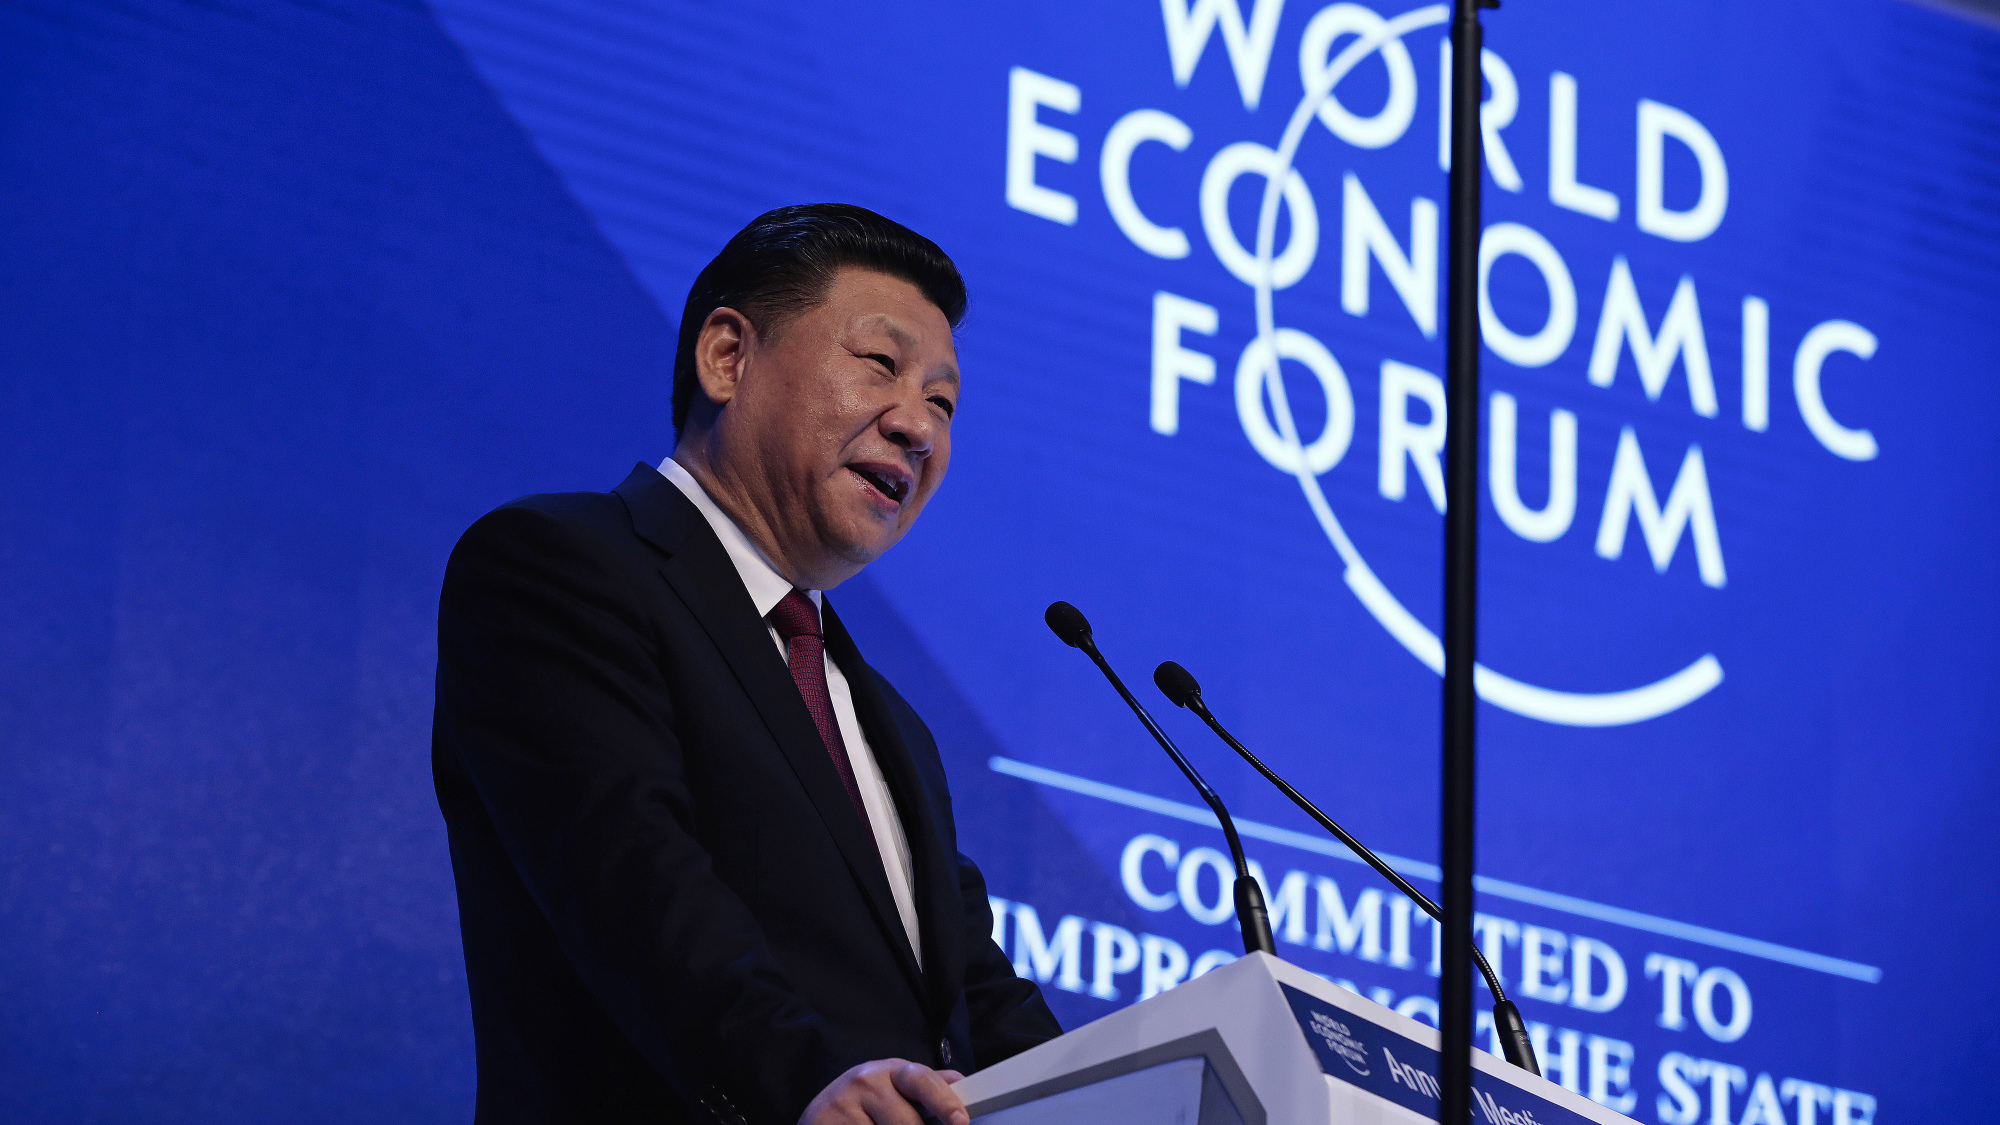 China's Xi Defends Globalization at World Economic Forum